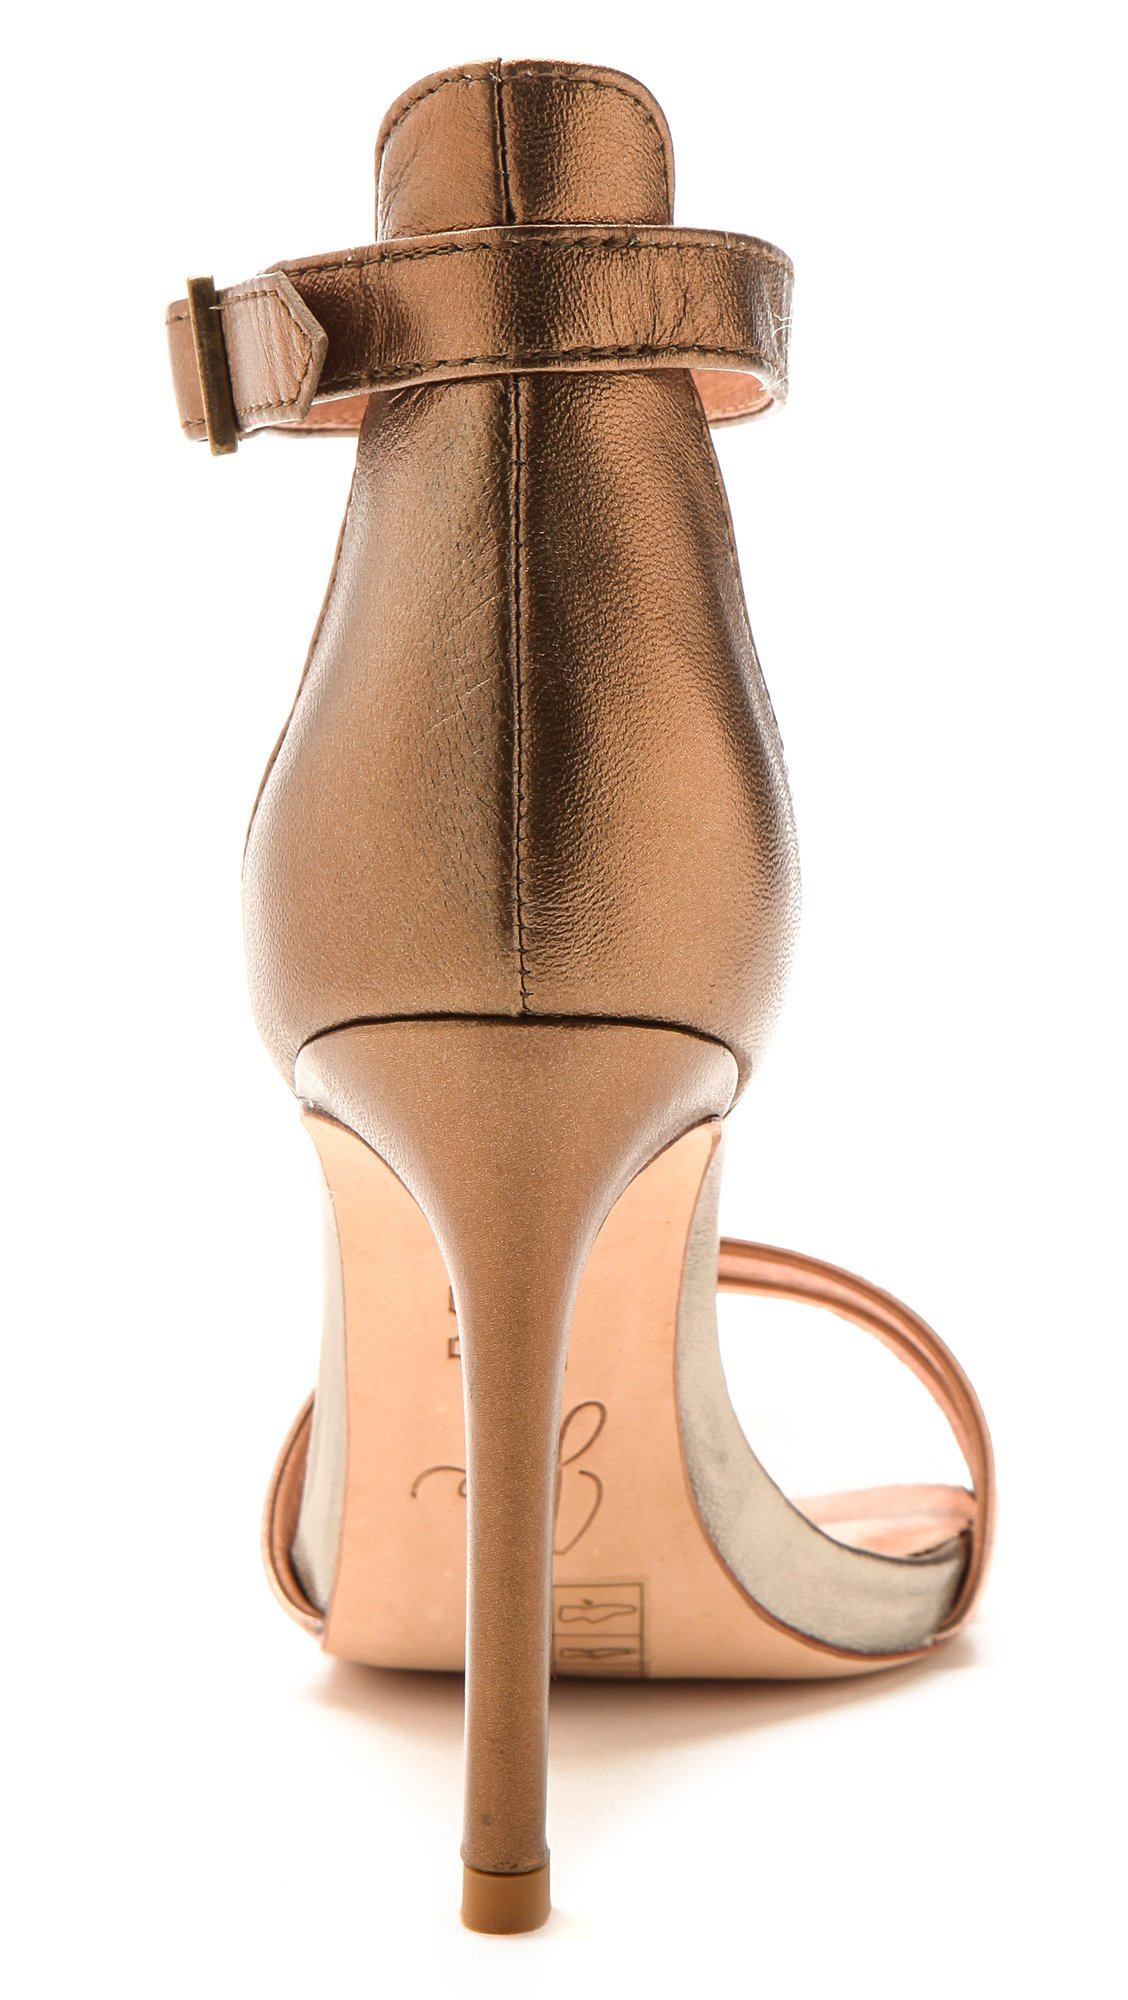 22fb86225ce1 Lyst - Joie Jena Sandals - Bronze Pewter Rose Gold in Metallic